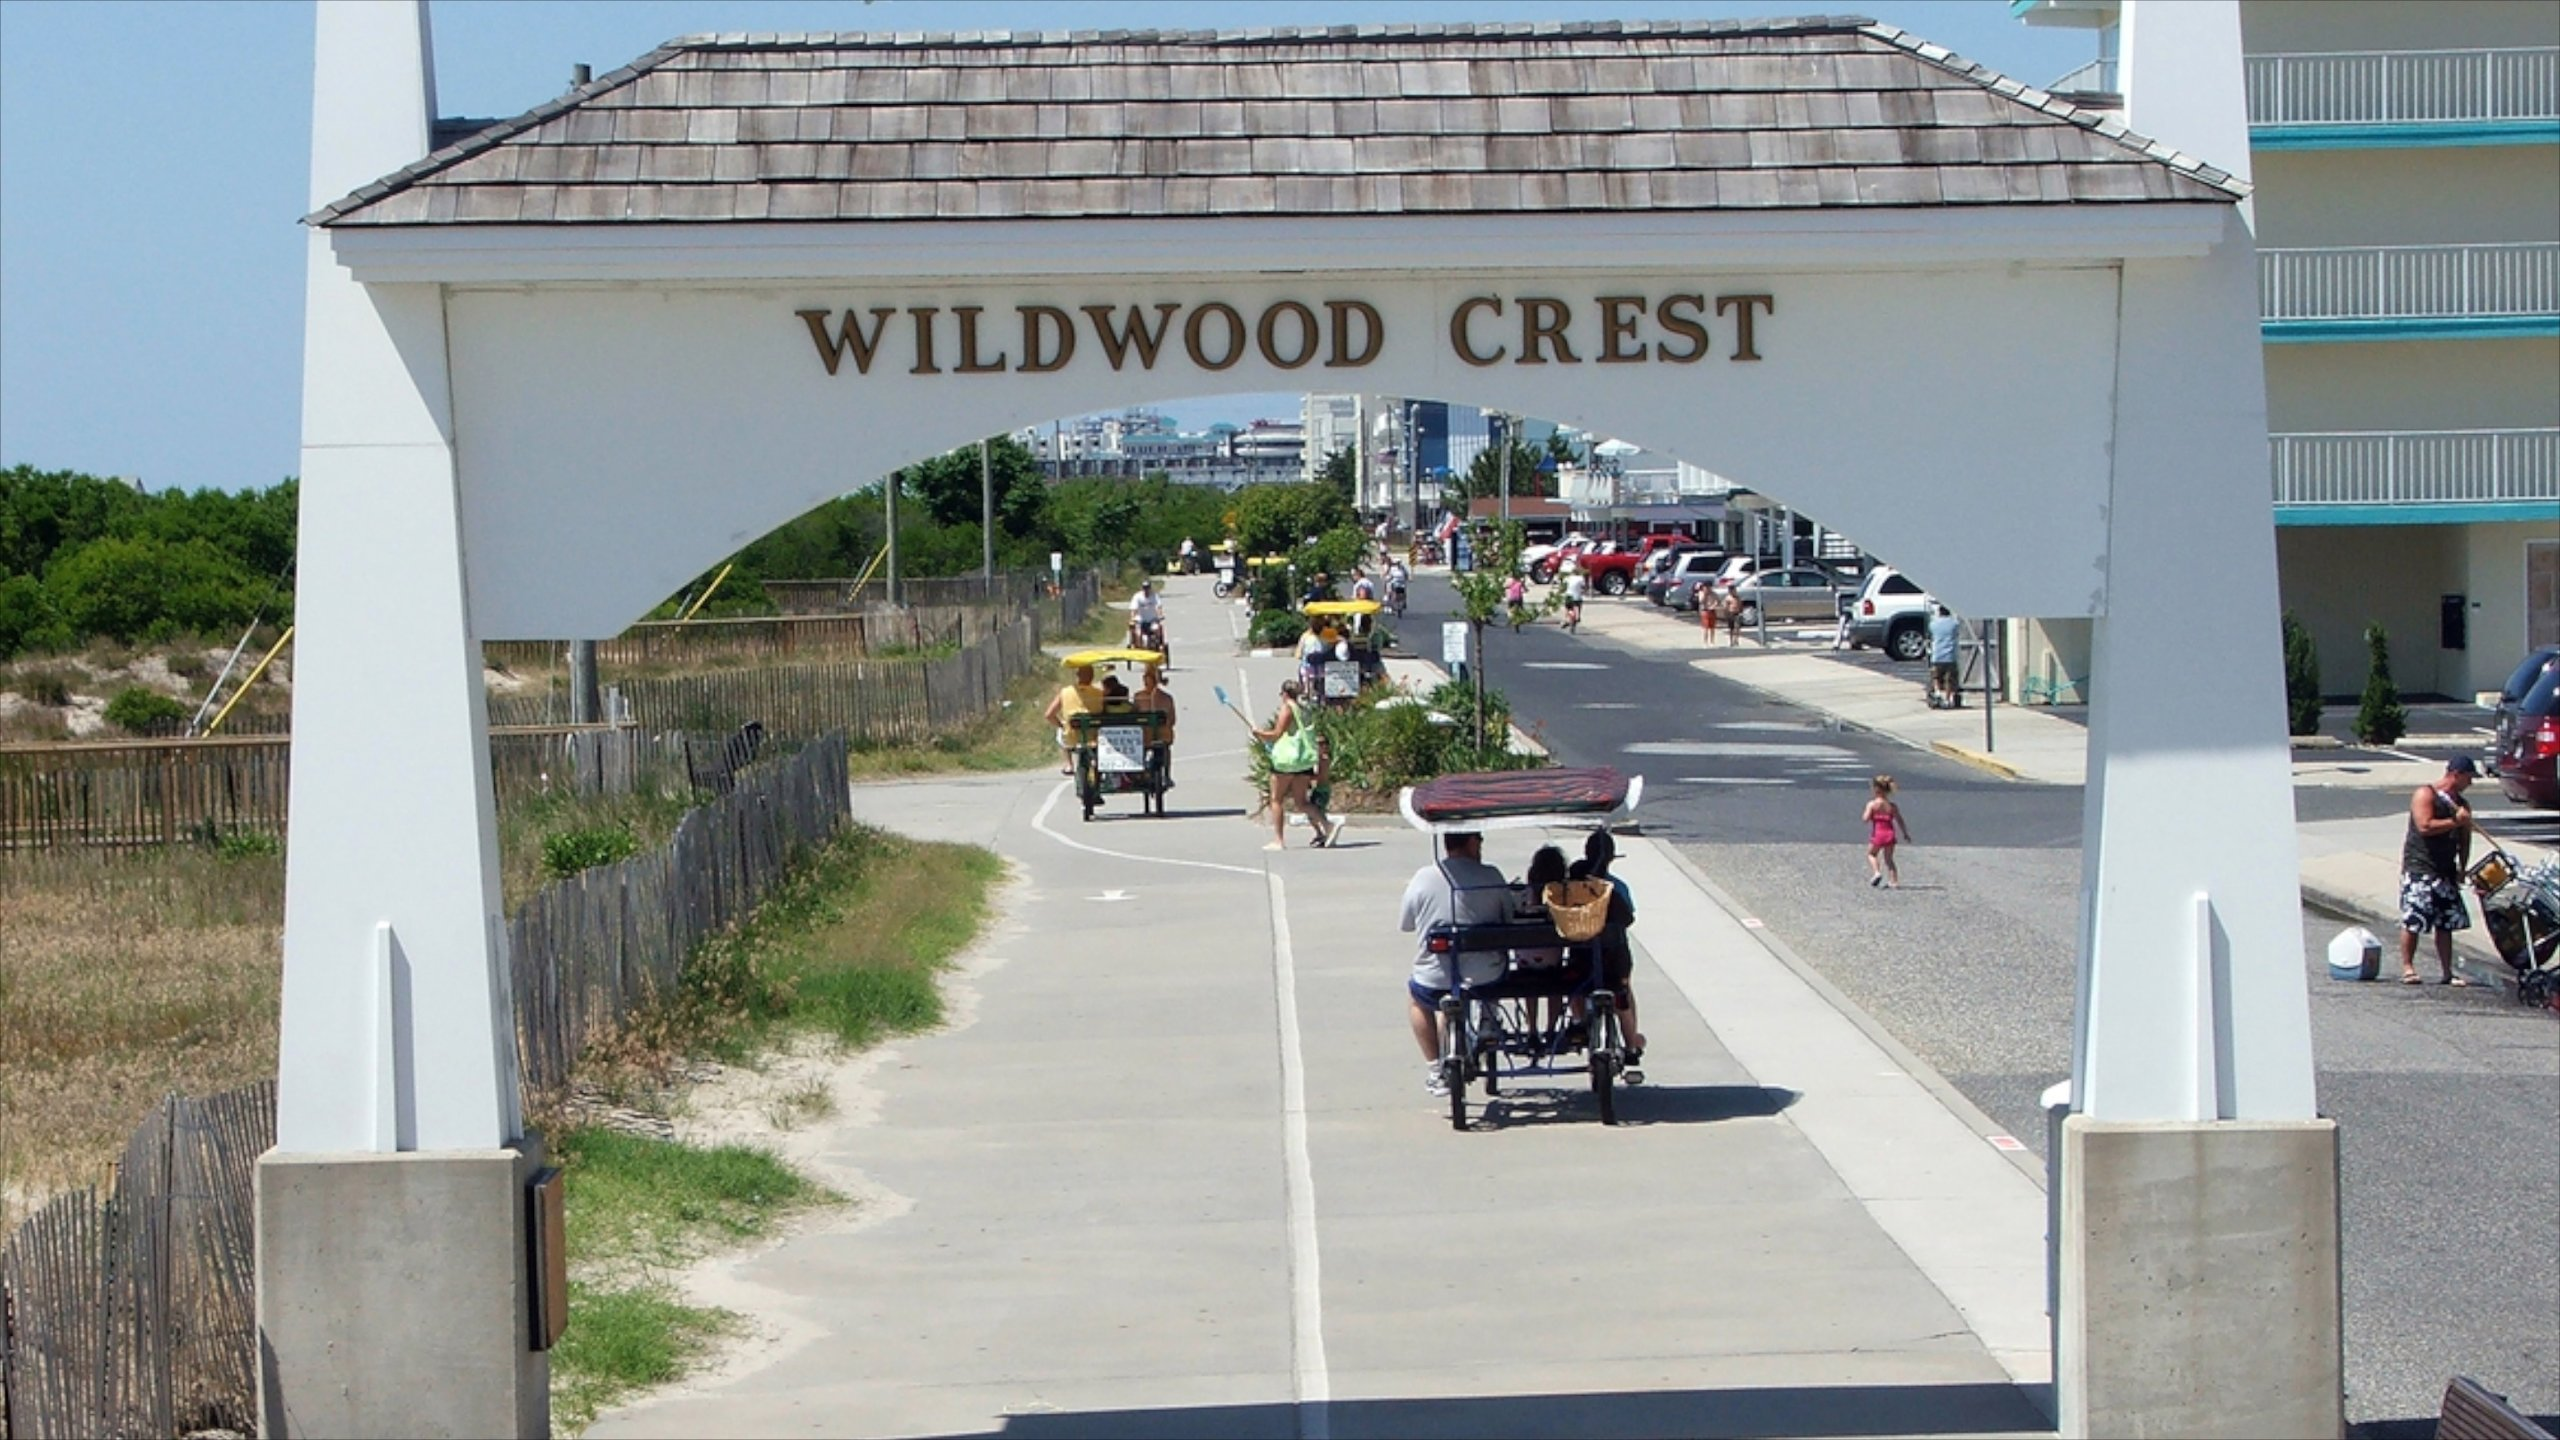 Wildwood Crest, New Jersey, United States of America